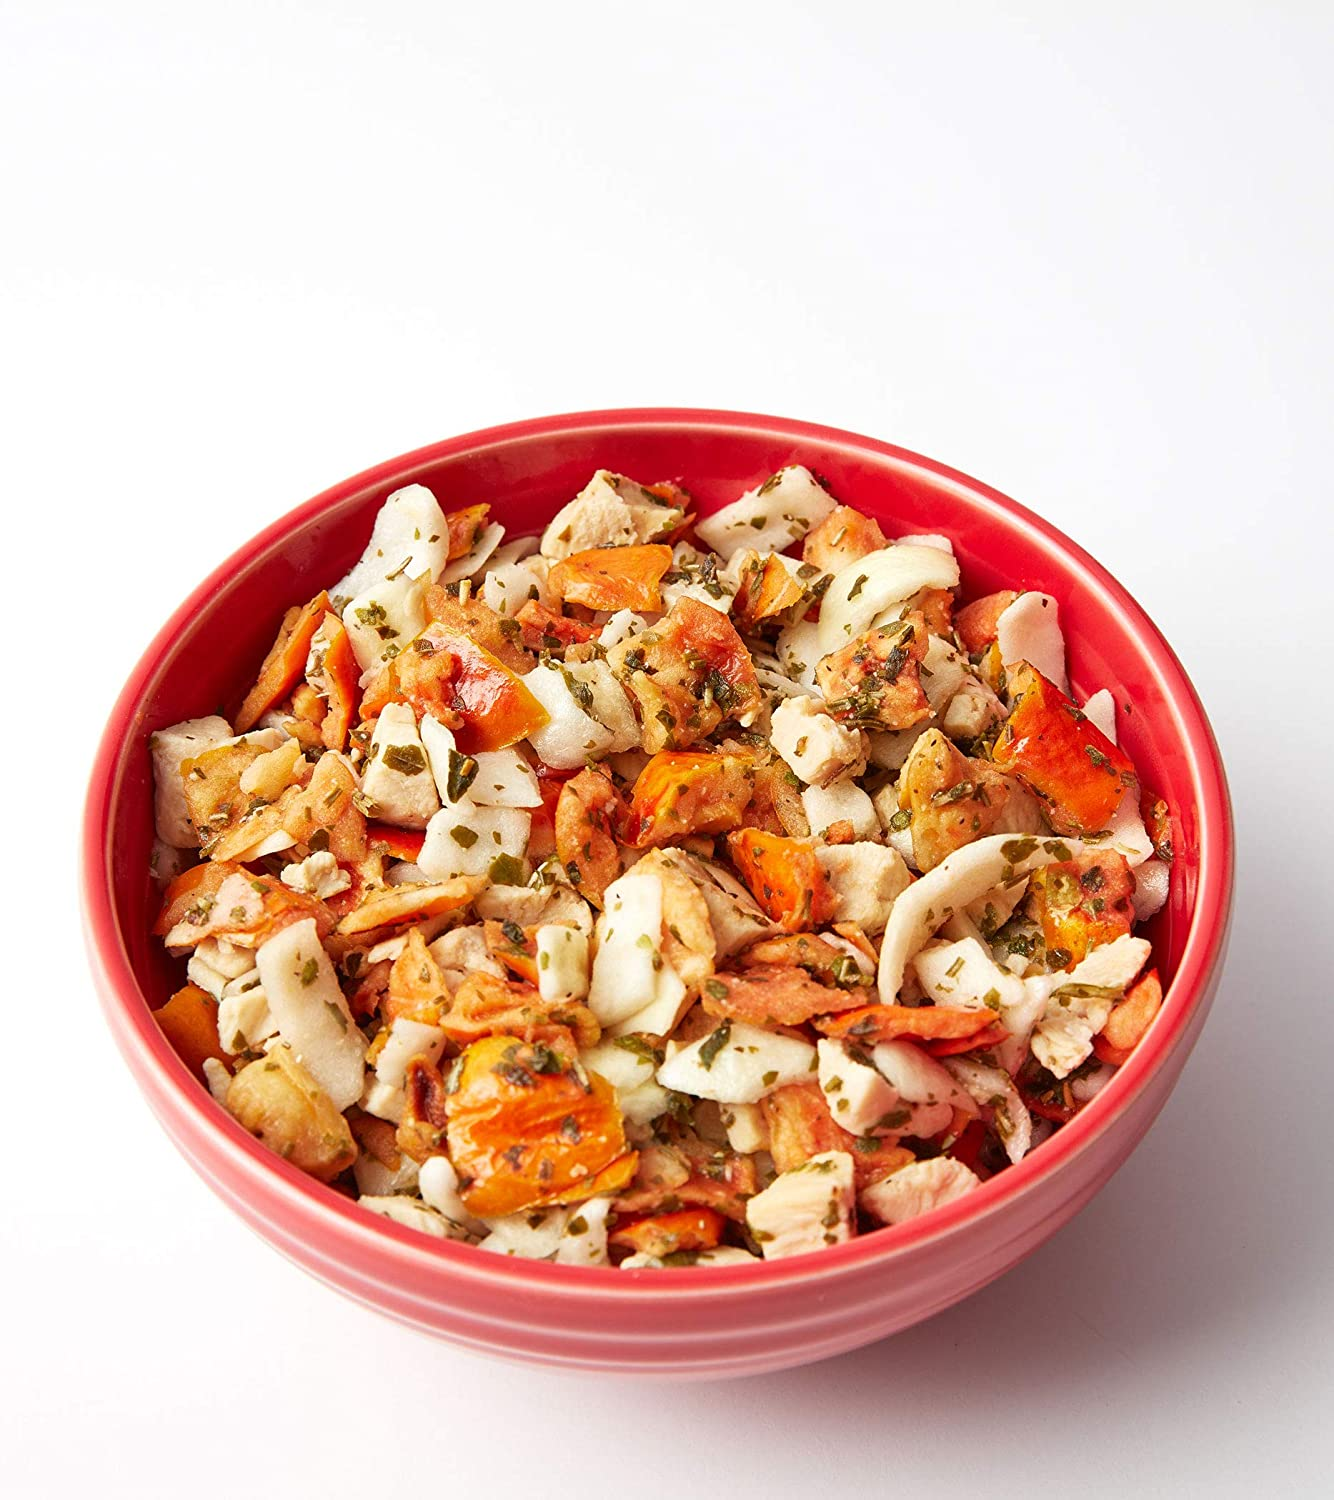 Elements Food, Balsamic Chicken Pomodoro, Healthy Freeze Dried Food, Paleo Meals (5)